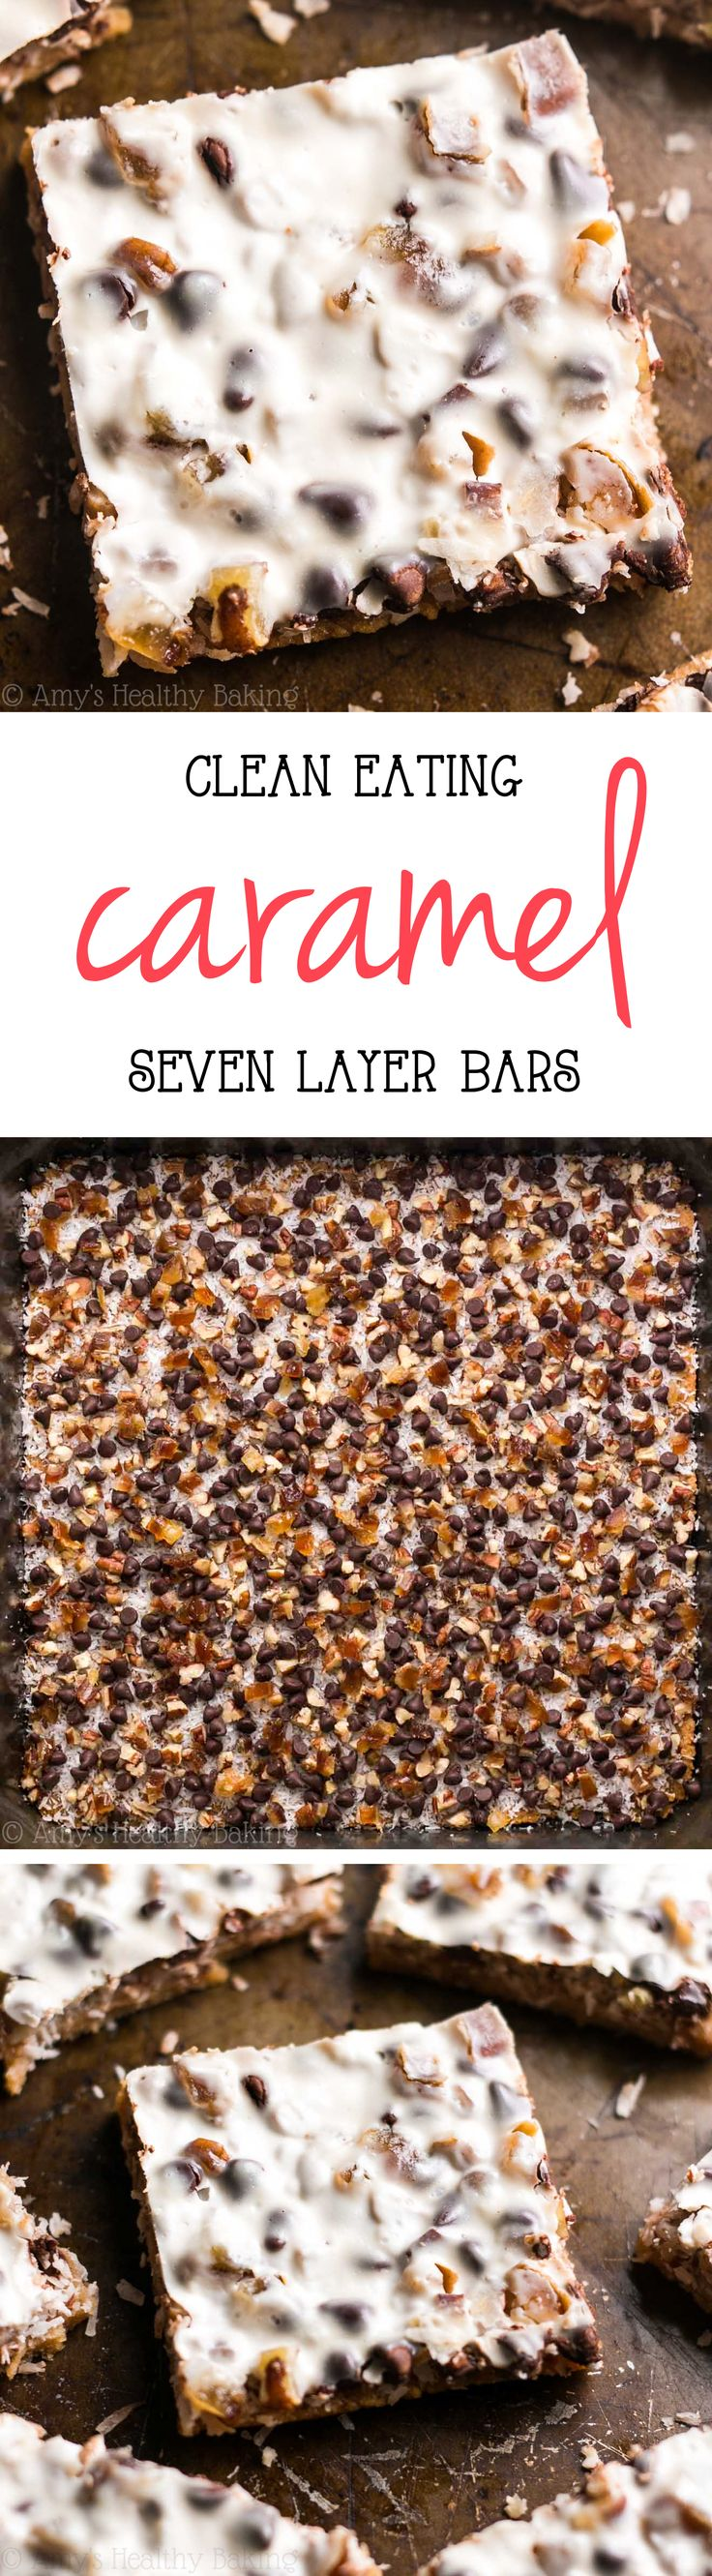 Skinny Caramel Seven Layer Bars – just 84 calories!! With a few healthy swaps, these magic bars have all of the decadence but NONE of the guilt! They don't taste healthy at all!z